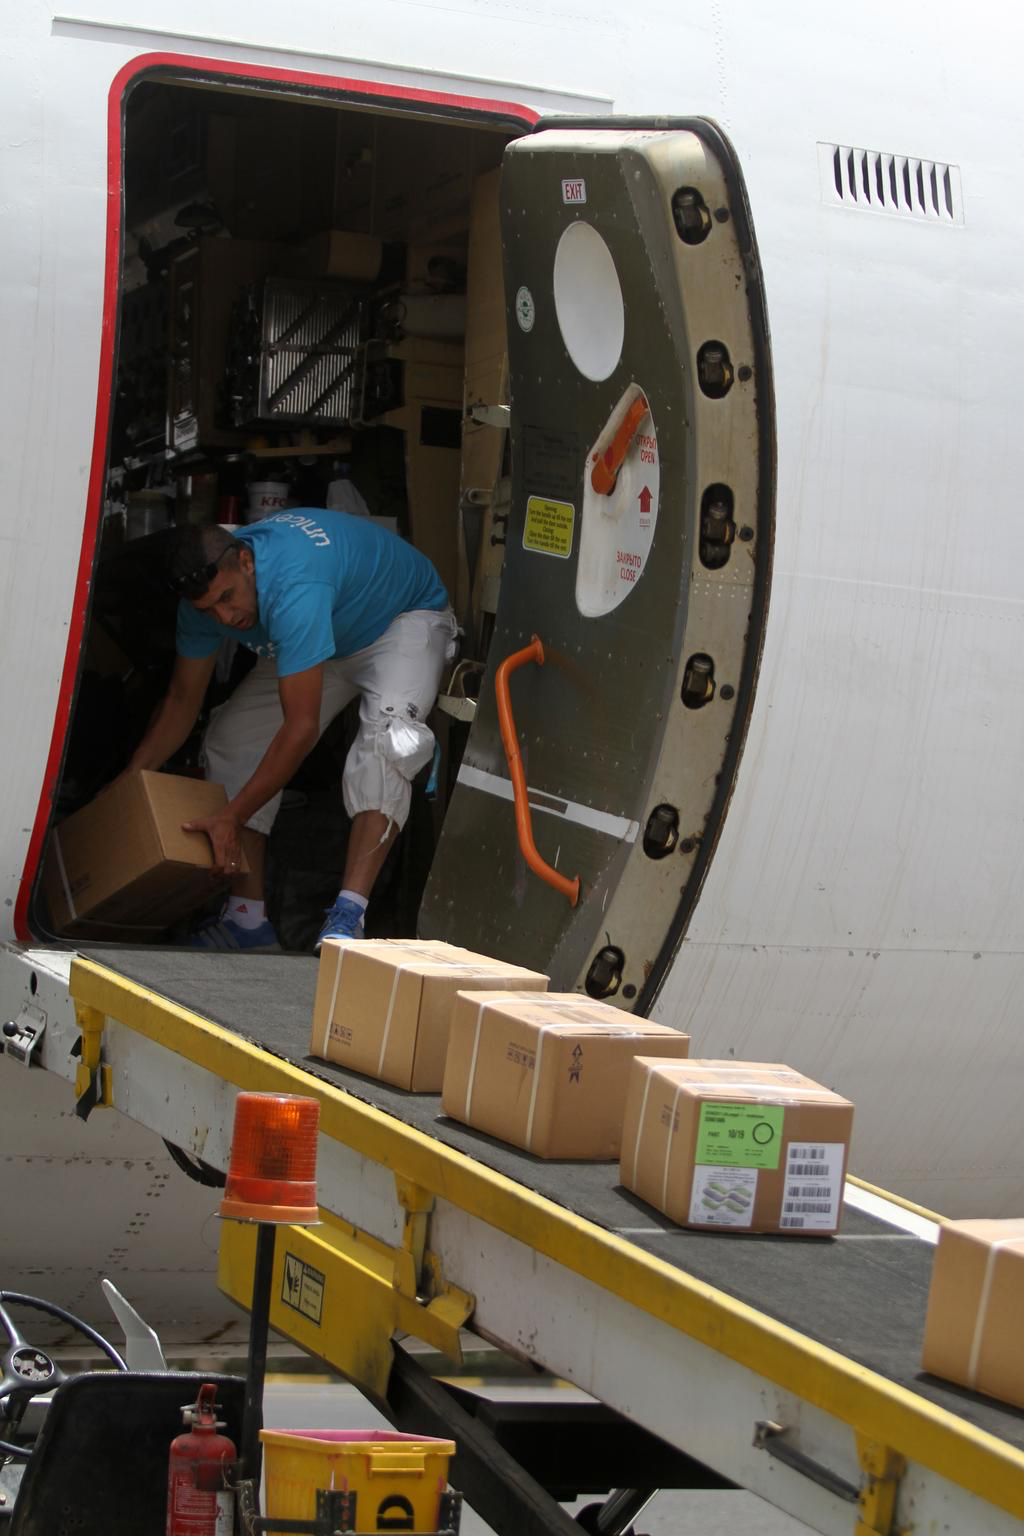 On 10 April 2015, a first airlift of urgent medical and other supplies from UNICEF is unloaded on the tarmac at Sana'a International Airport, via  Djibouti from UNICEF's Supply Centre in Denmark. FROM UNICEF -